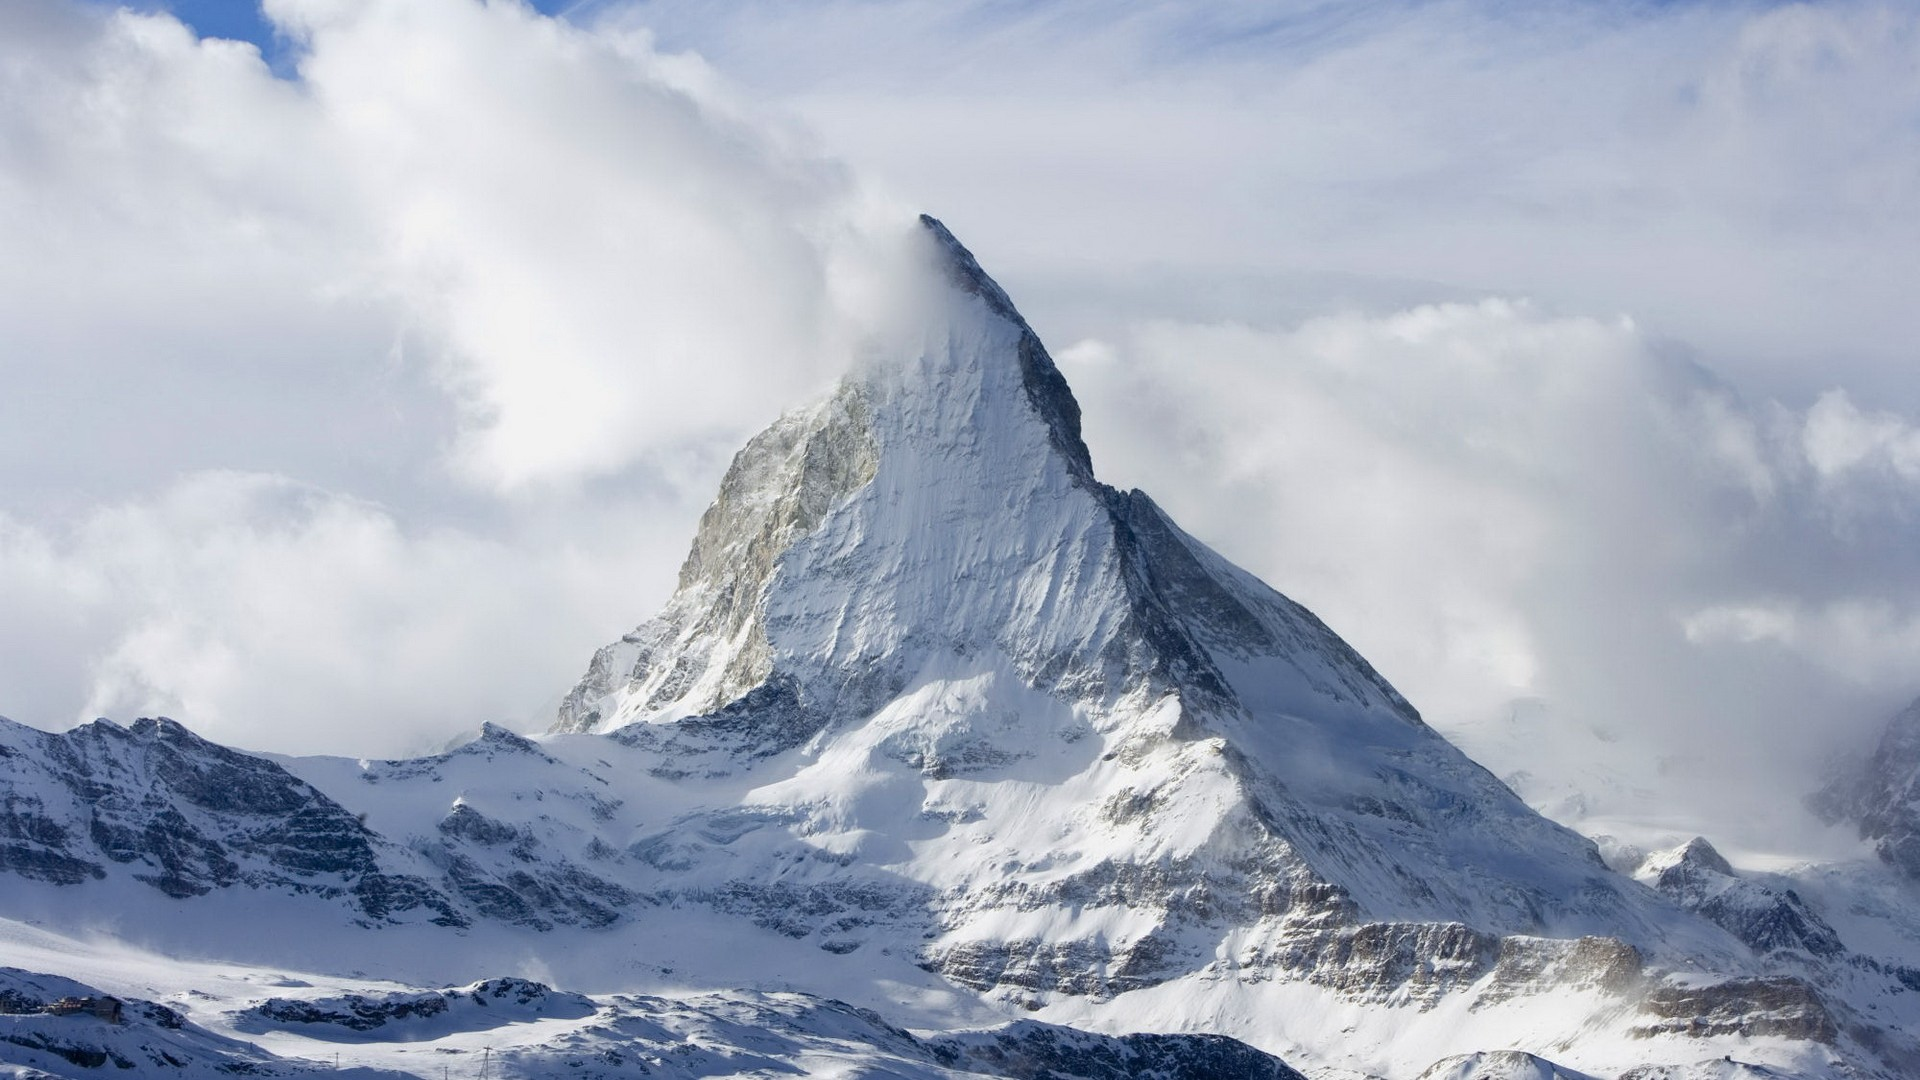 Free Download Top Matterhorn Wallpaper Hd Wallpapers